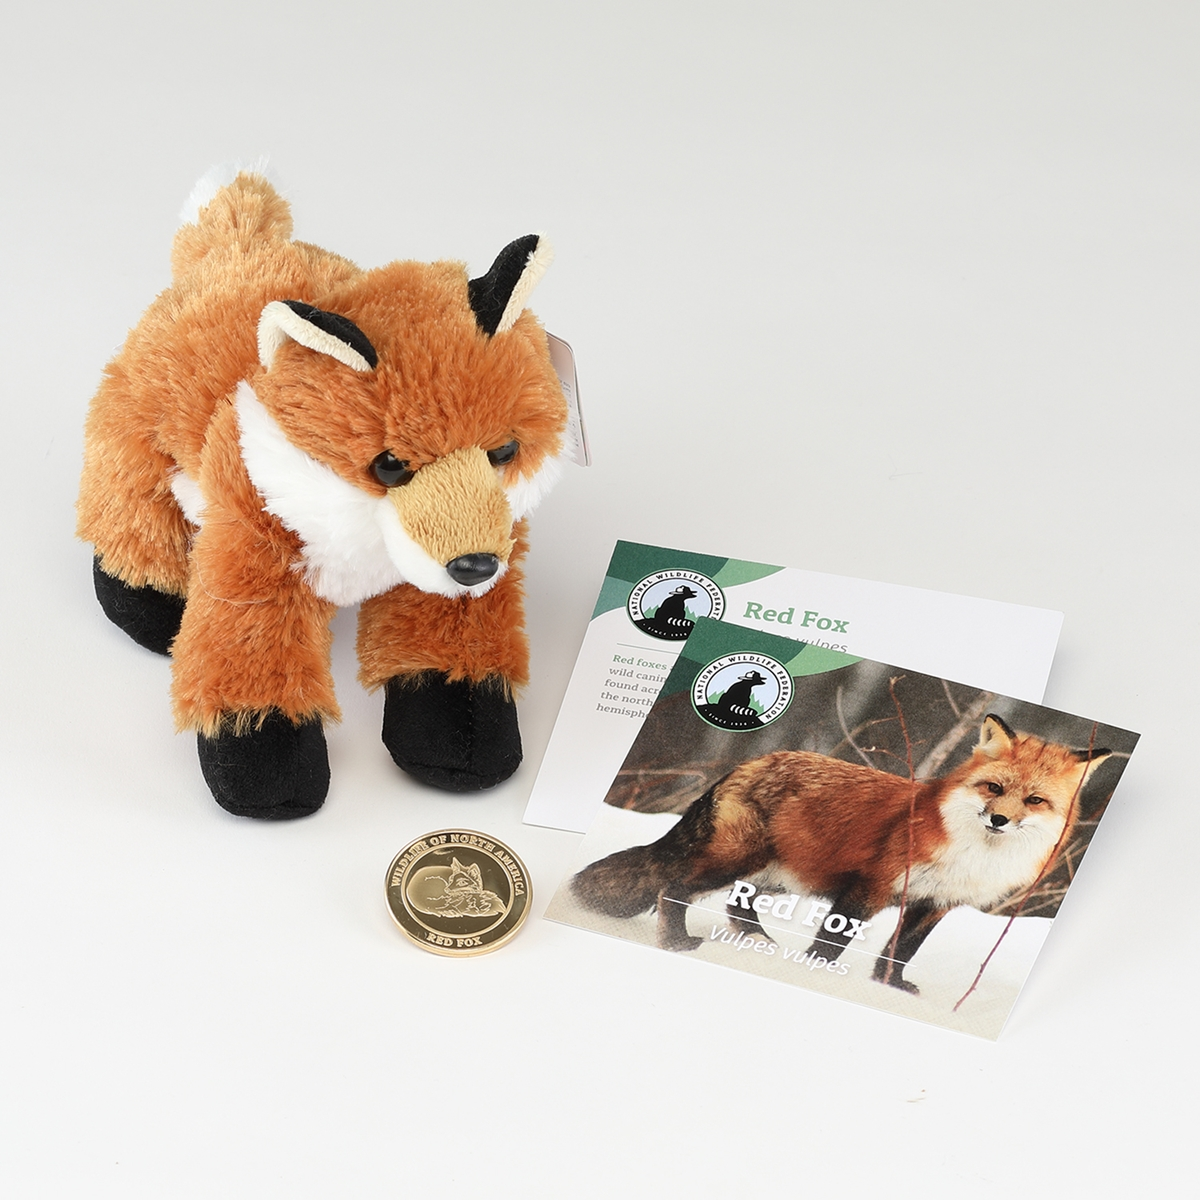 Red Fox Collector Coin